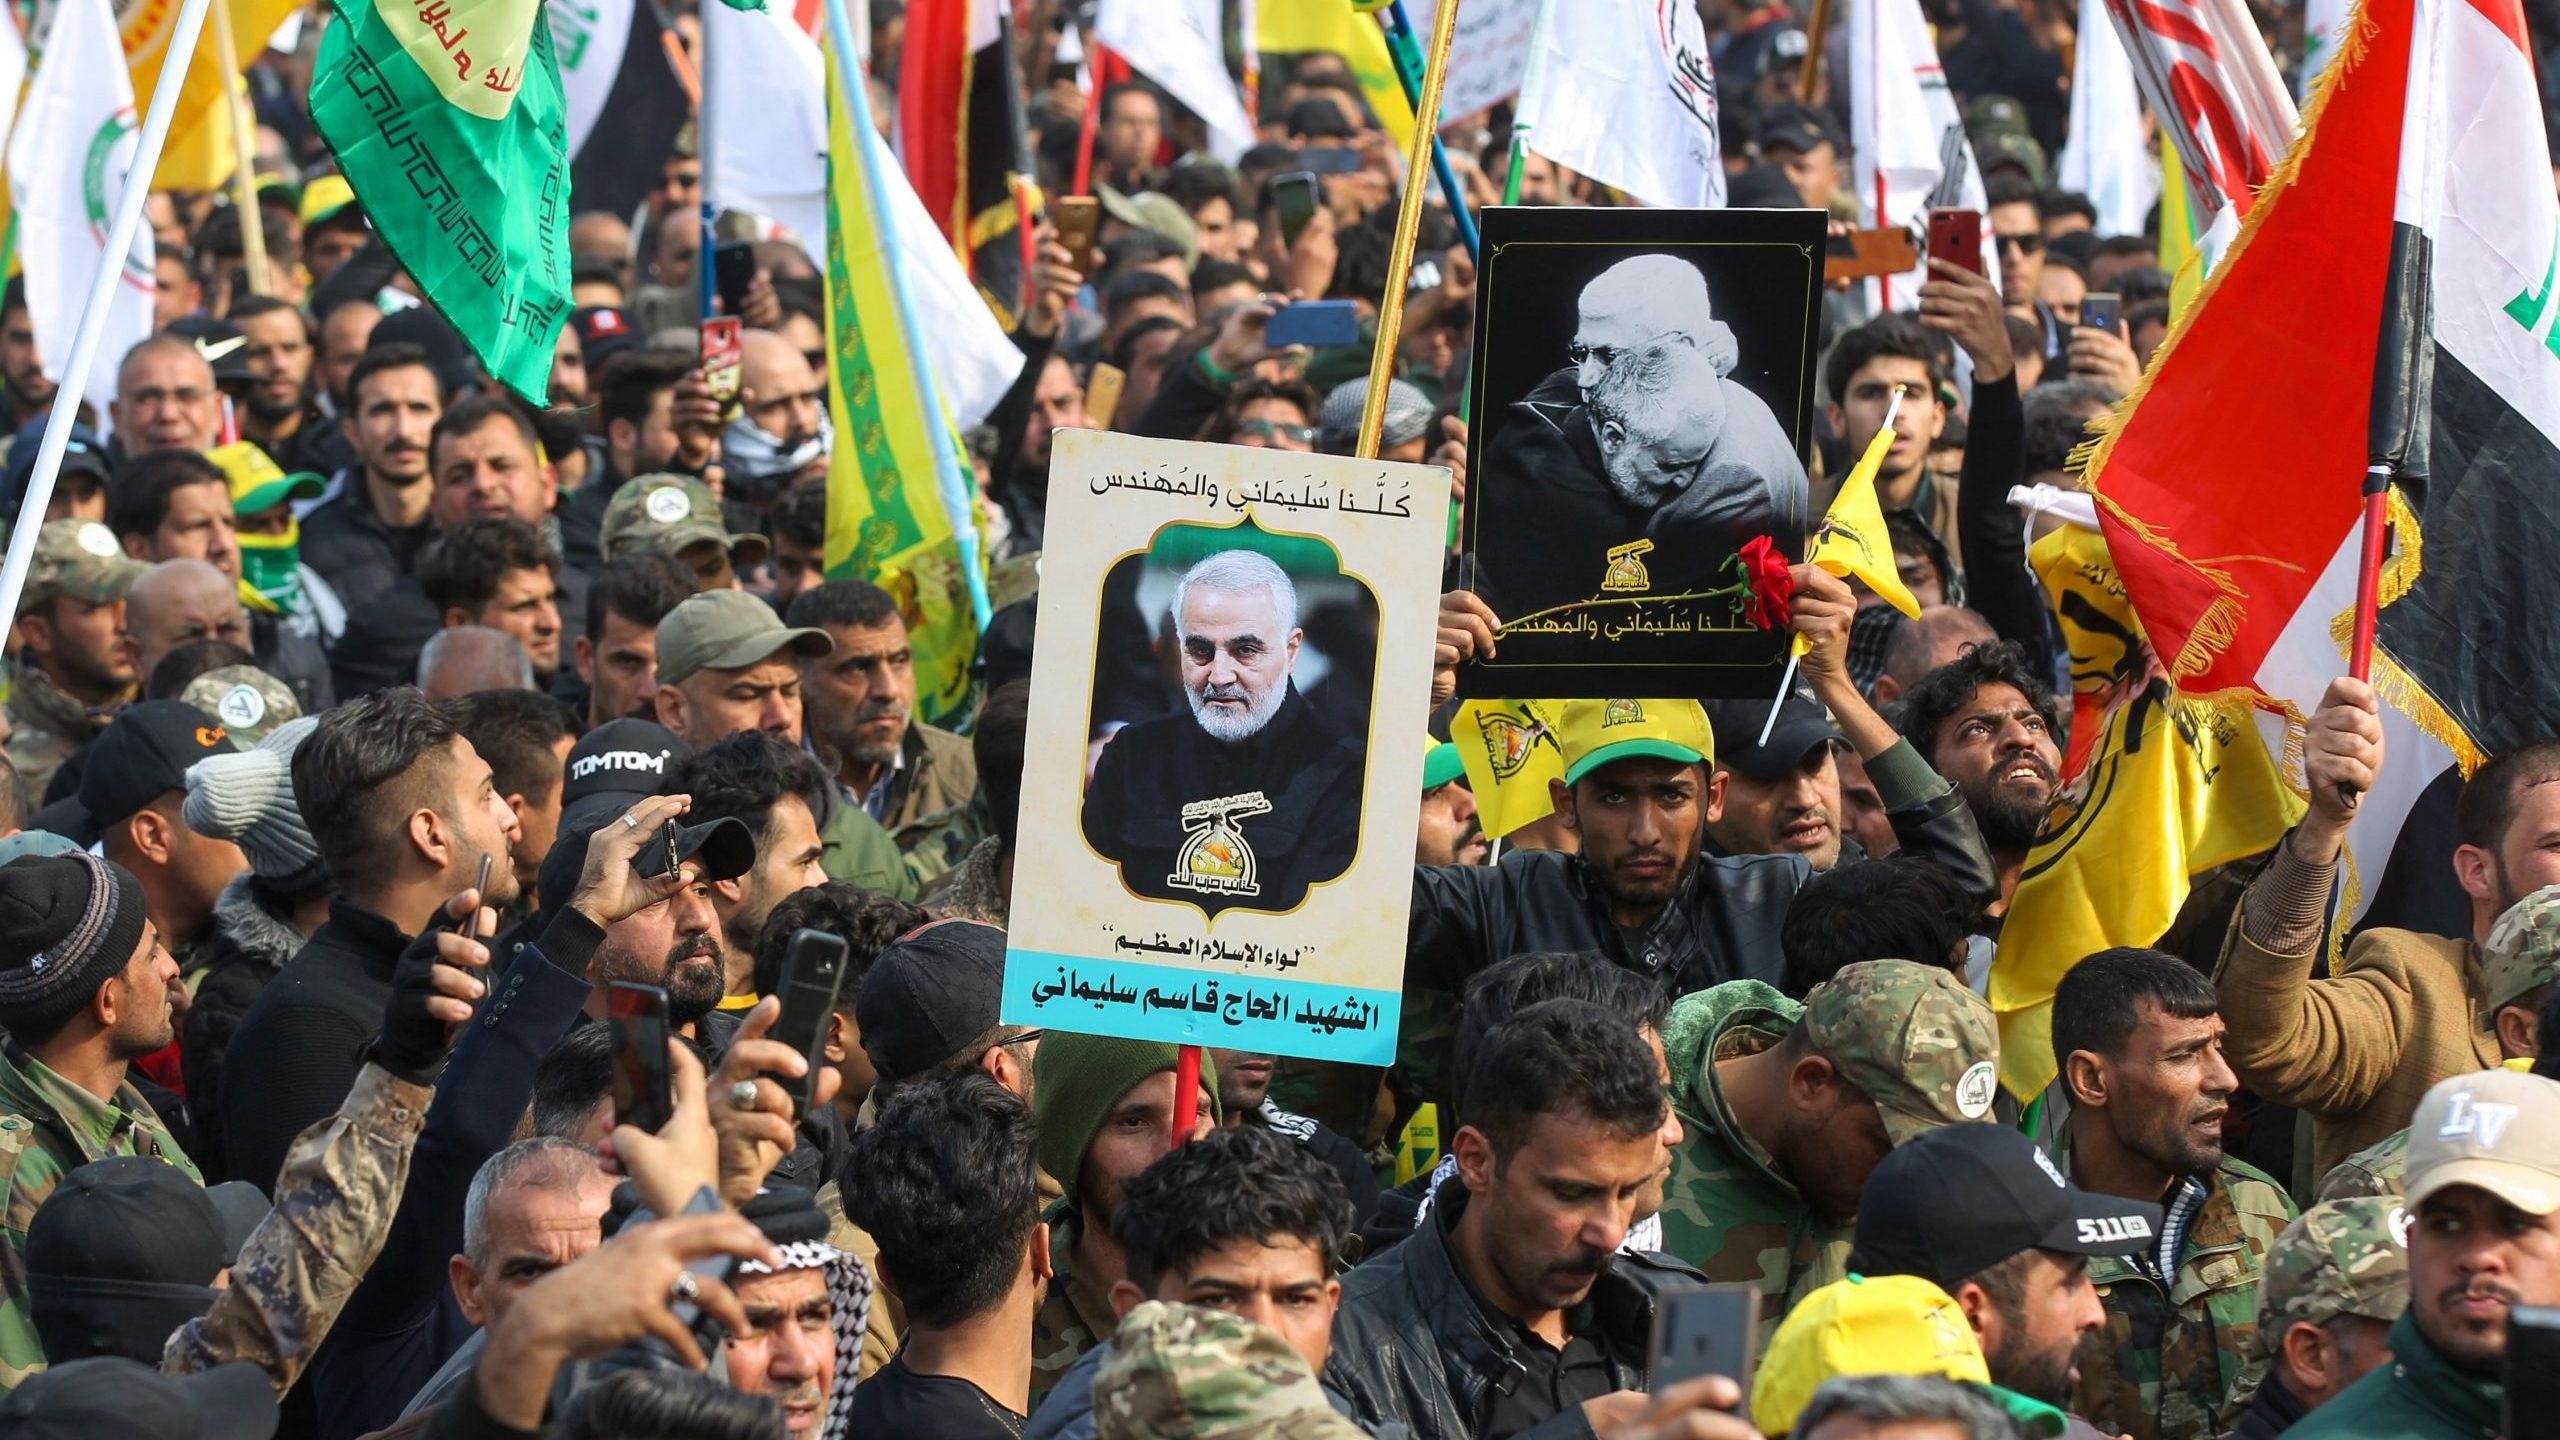 Supporters of the Hashed al-Shaabi paramilitary force and Iraq's Hezbollah brigades attend the funeral of Iranian military commander Qassem Soleimani in Baghdad's district of al-Jadriya on Jan. 4, 2020. (Credit: AHMAD AL-RUBAYE/AFP via Getty Images)